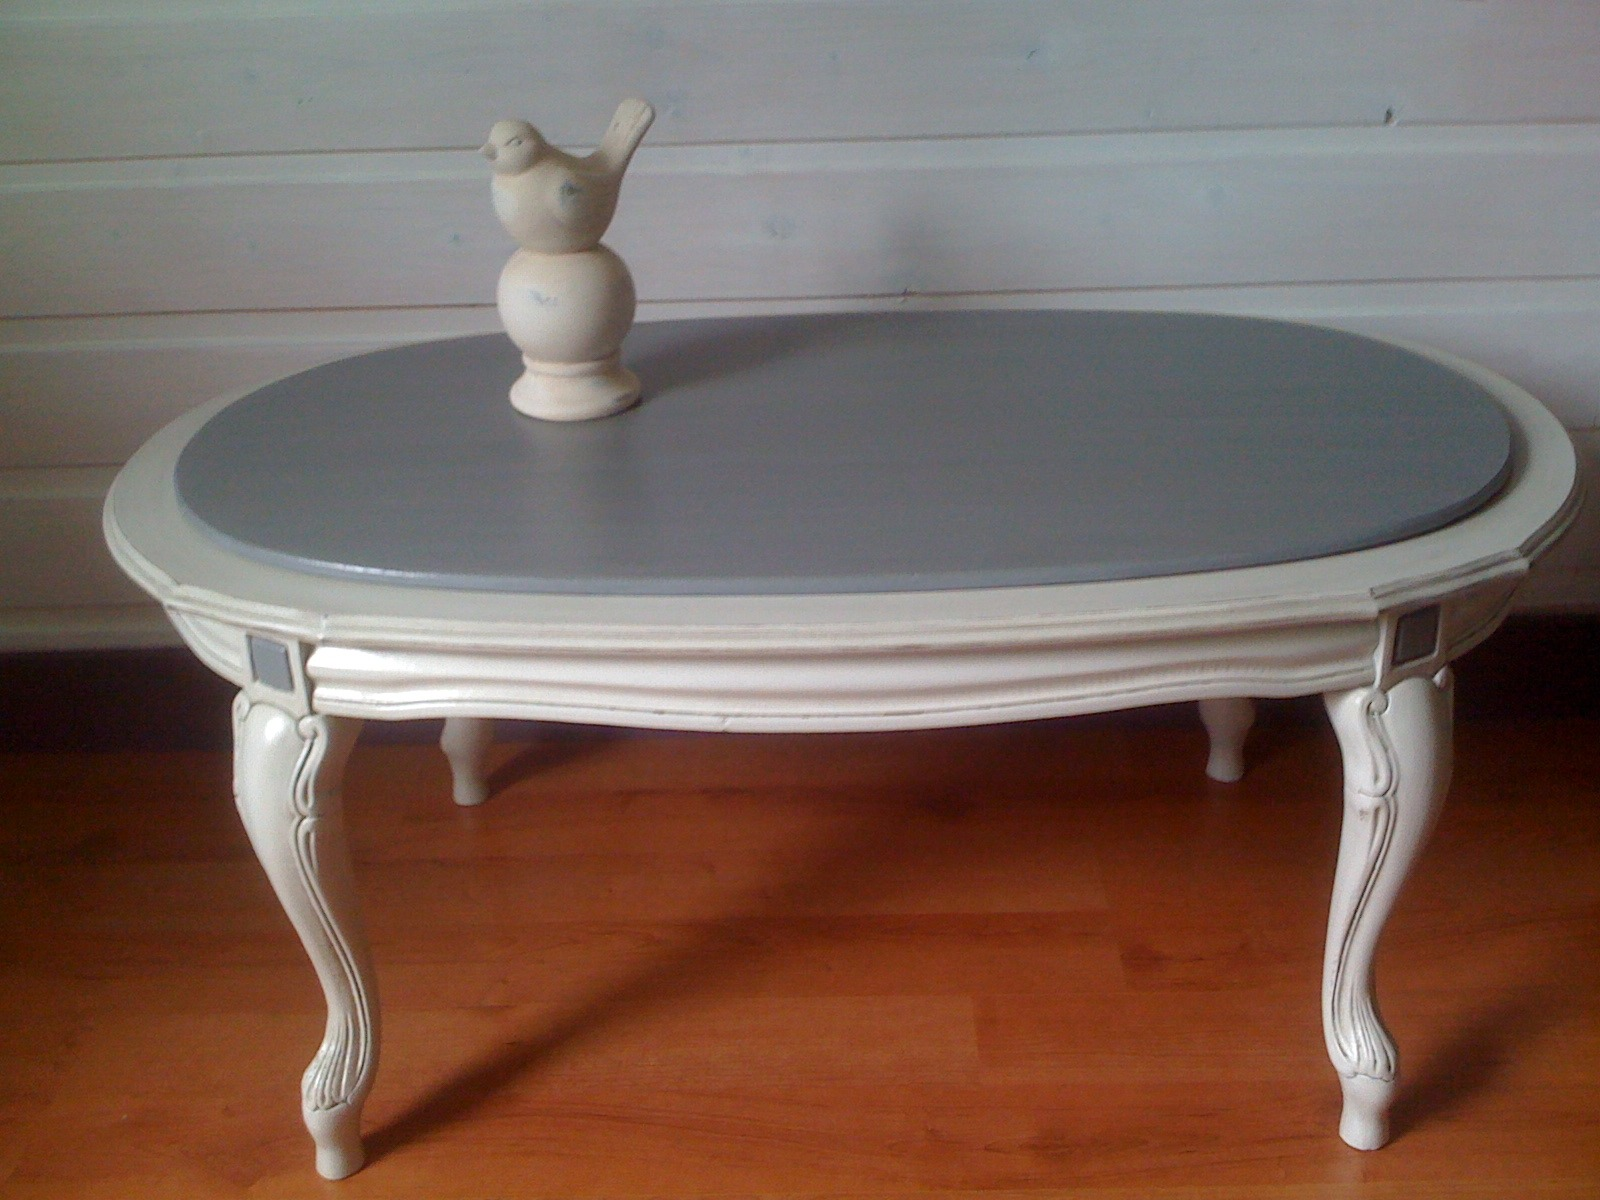 Table Salon Marbre Table Basse Merisier Plateau Marbre Lille Menage Fr Maison